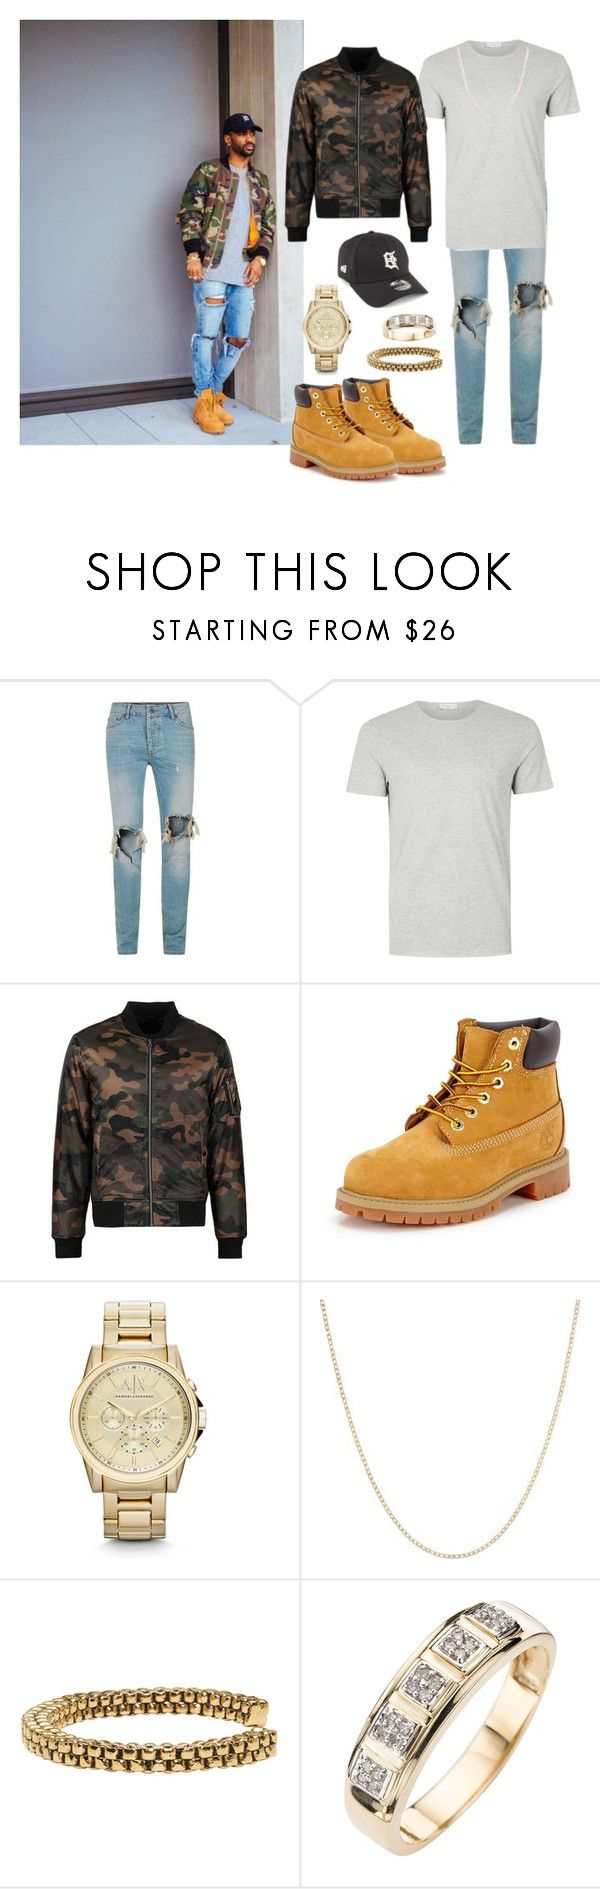 """""""Big Sean- Camo Style"""" by tasharna ❤ liked on Polyvore featuring Timberland, Armani Exchange, CO, men's fashion and menswear"""